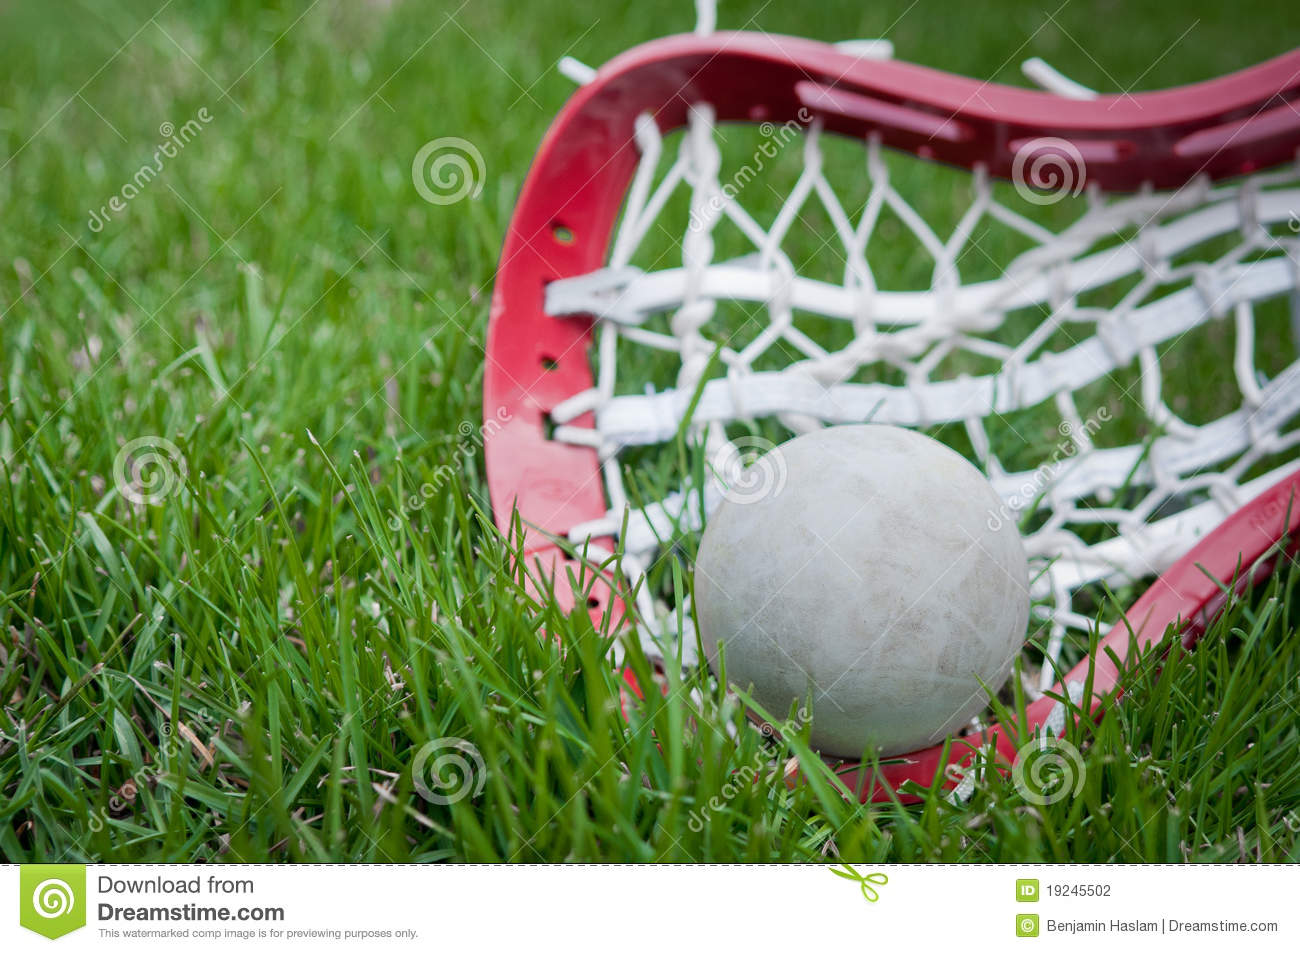 all sports photography mn FxAzp